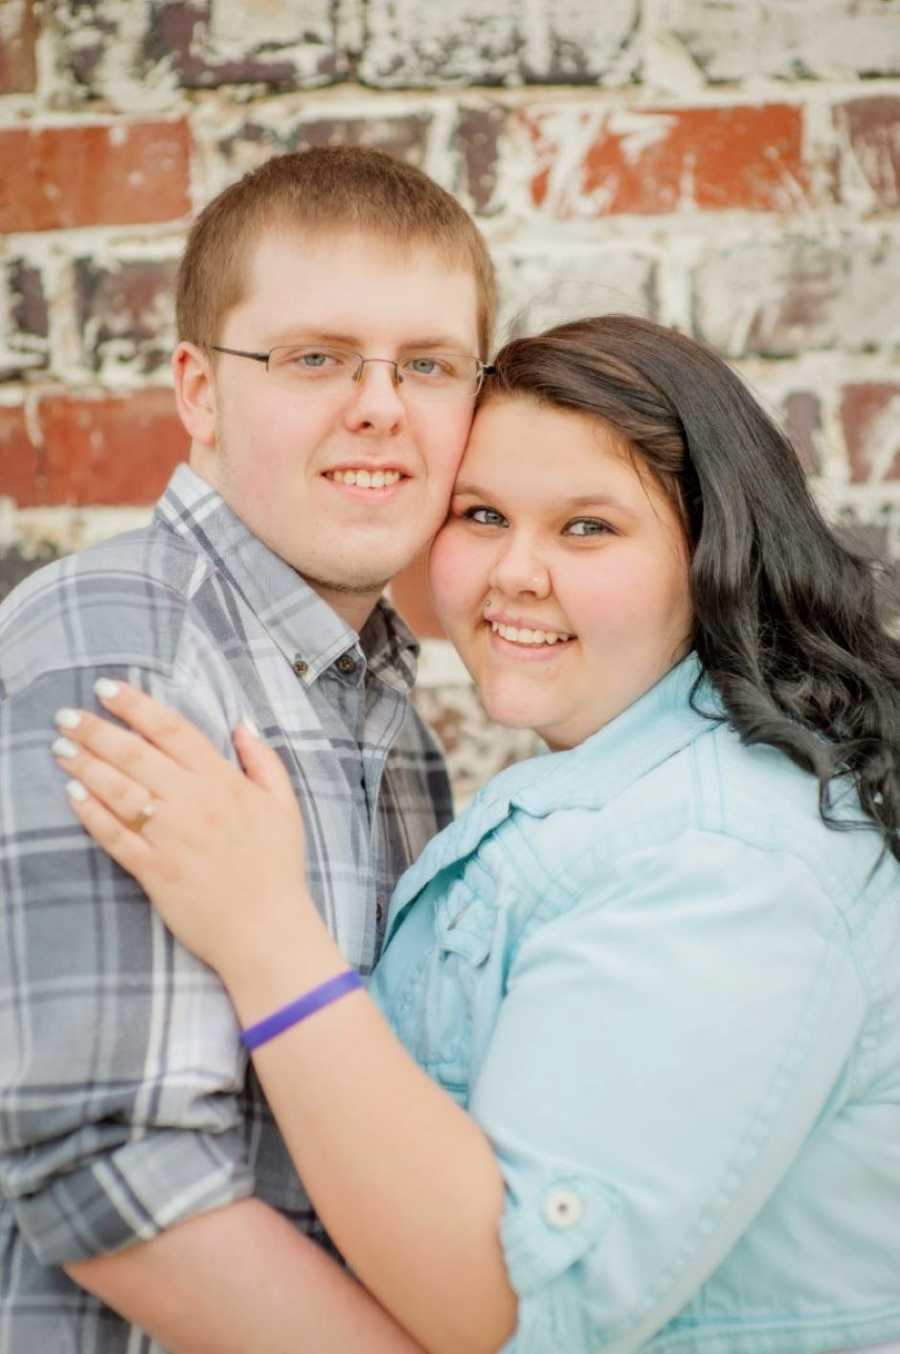 High school sweethearts take couple's photos together, both wearing button-down shirts